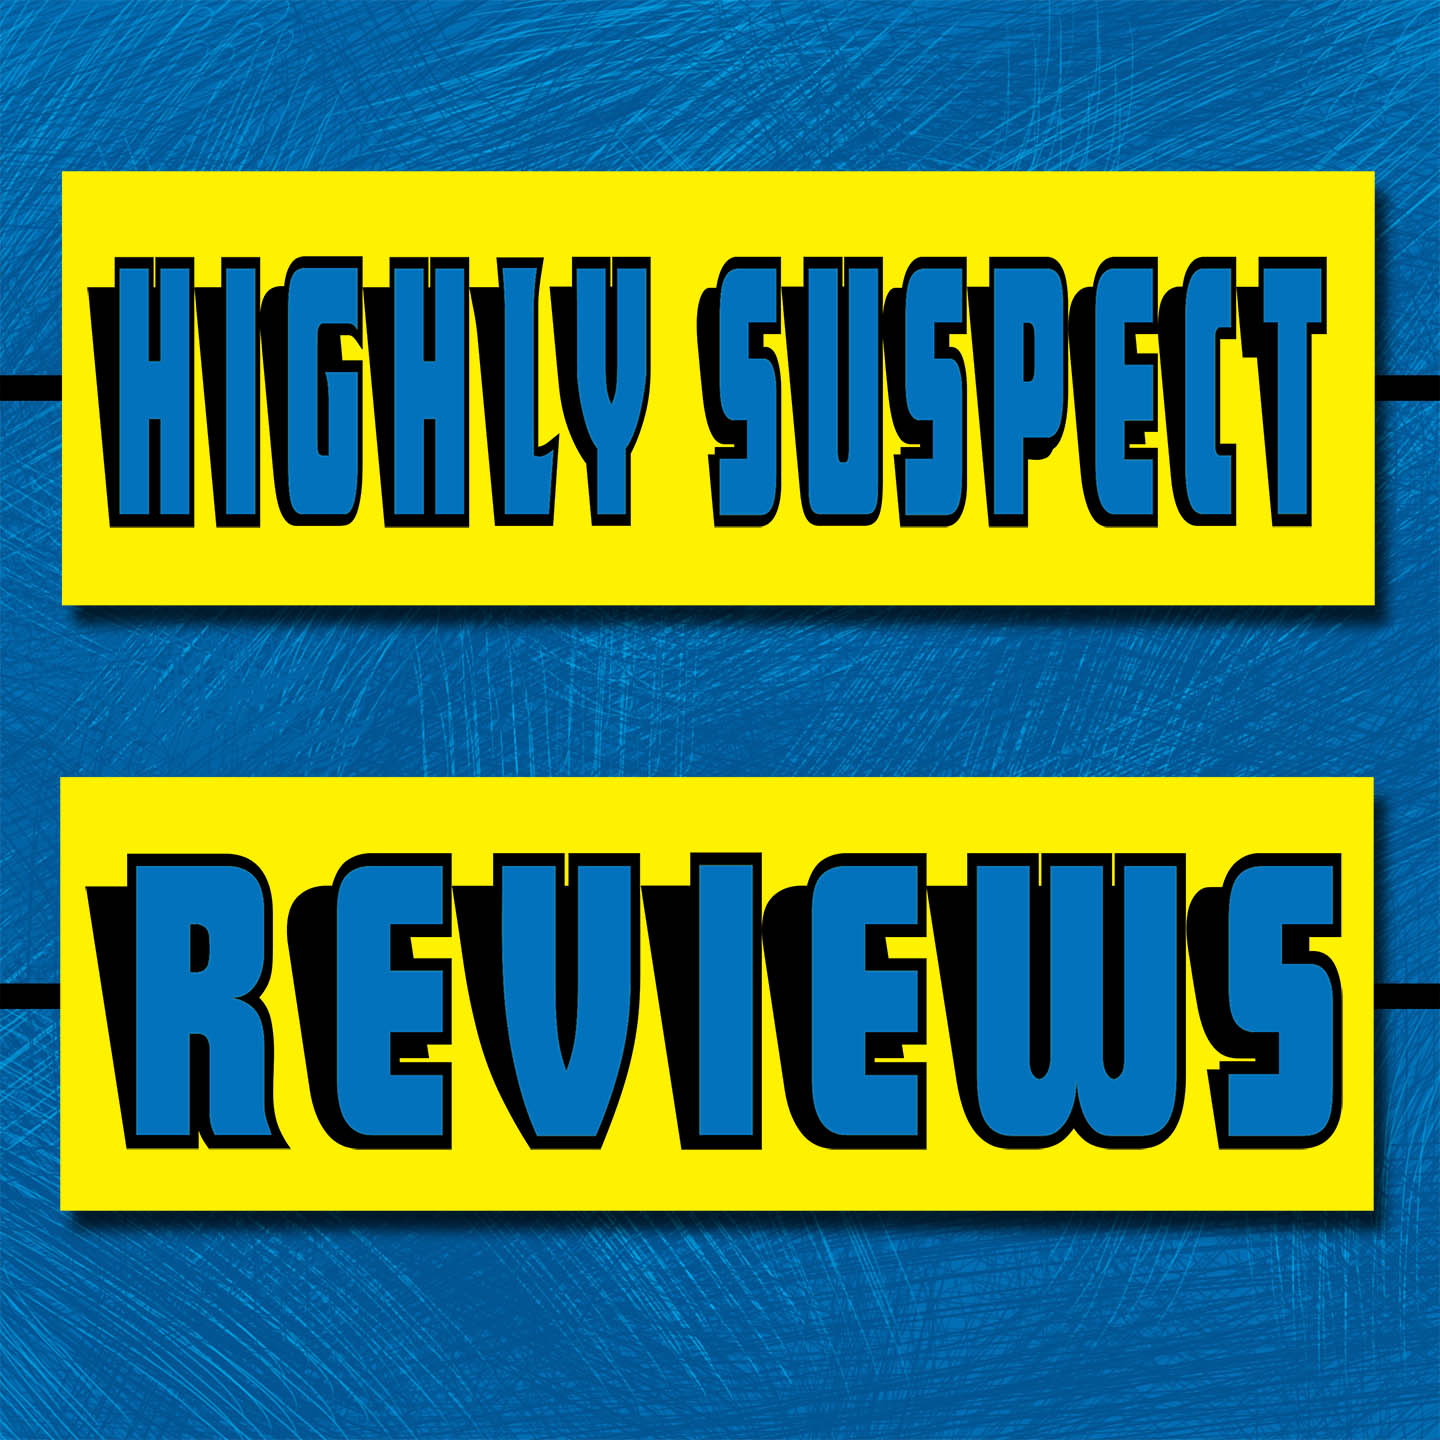 Highly Suspect Reviews